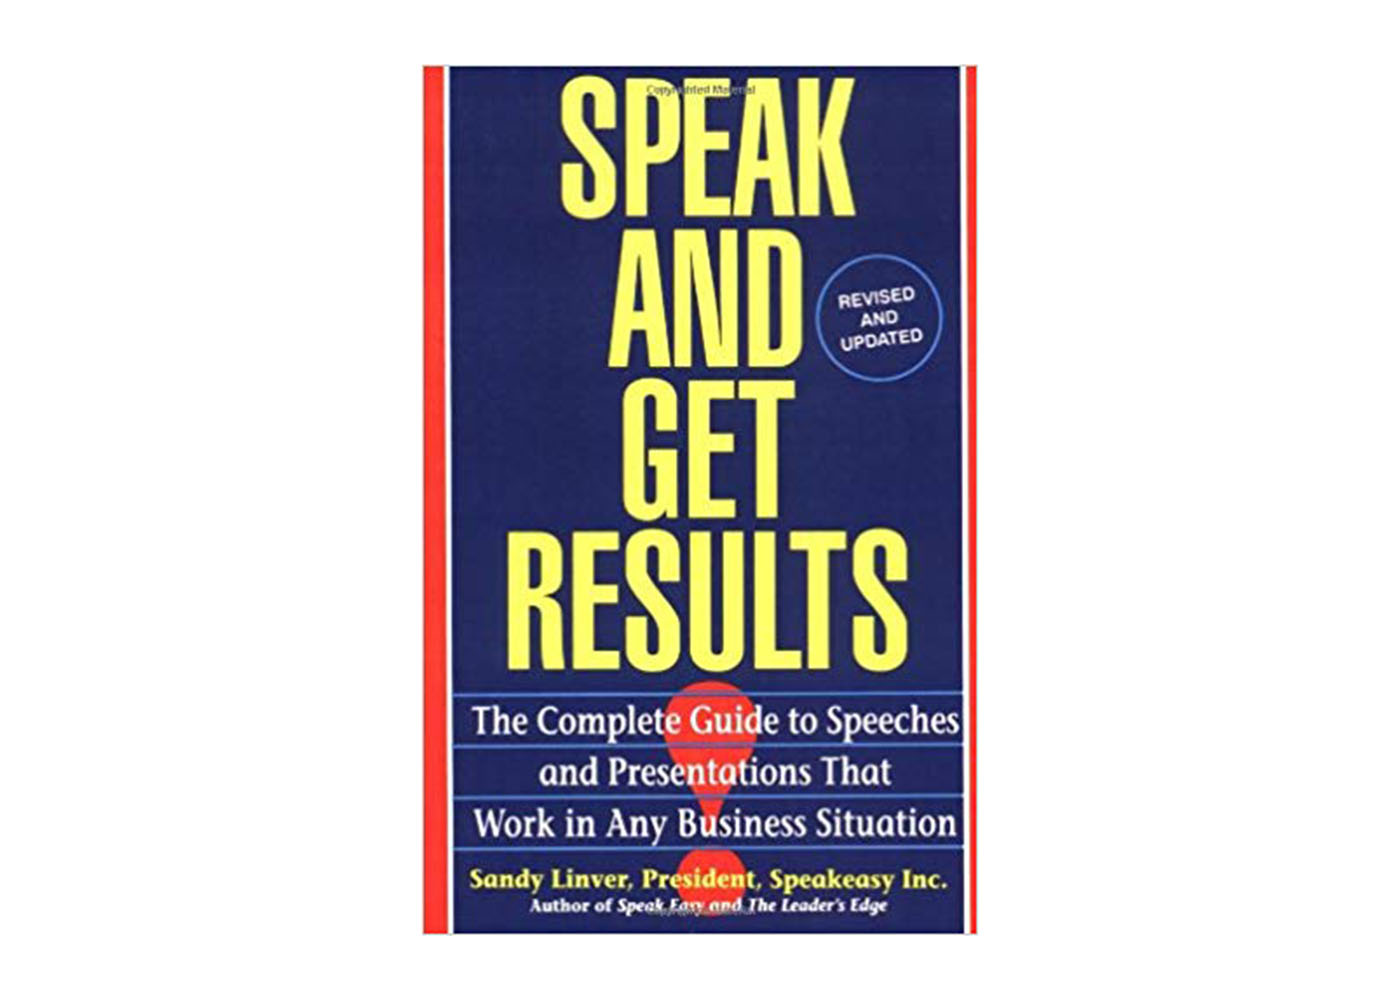 Speak and Get Results book